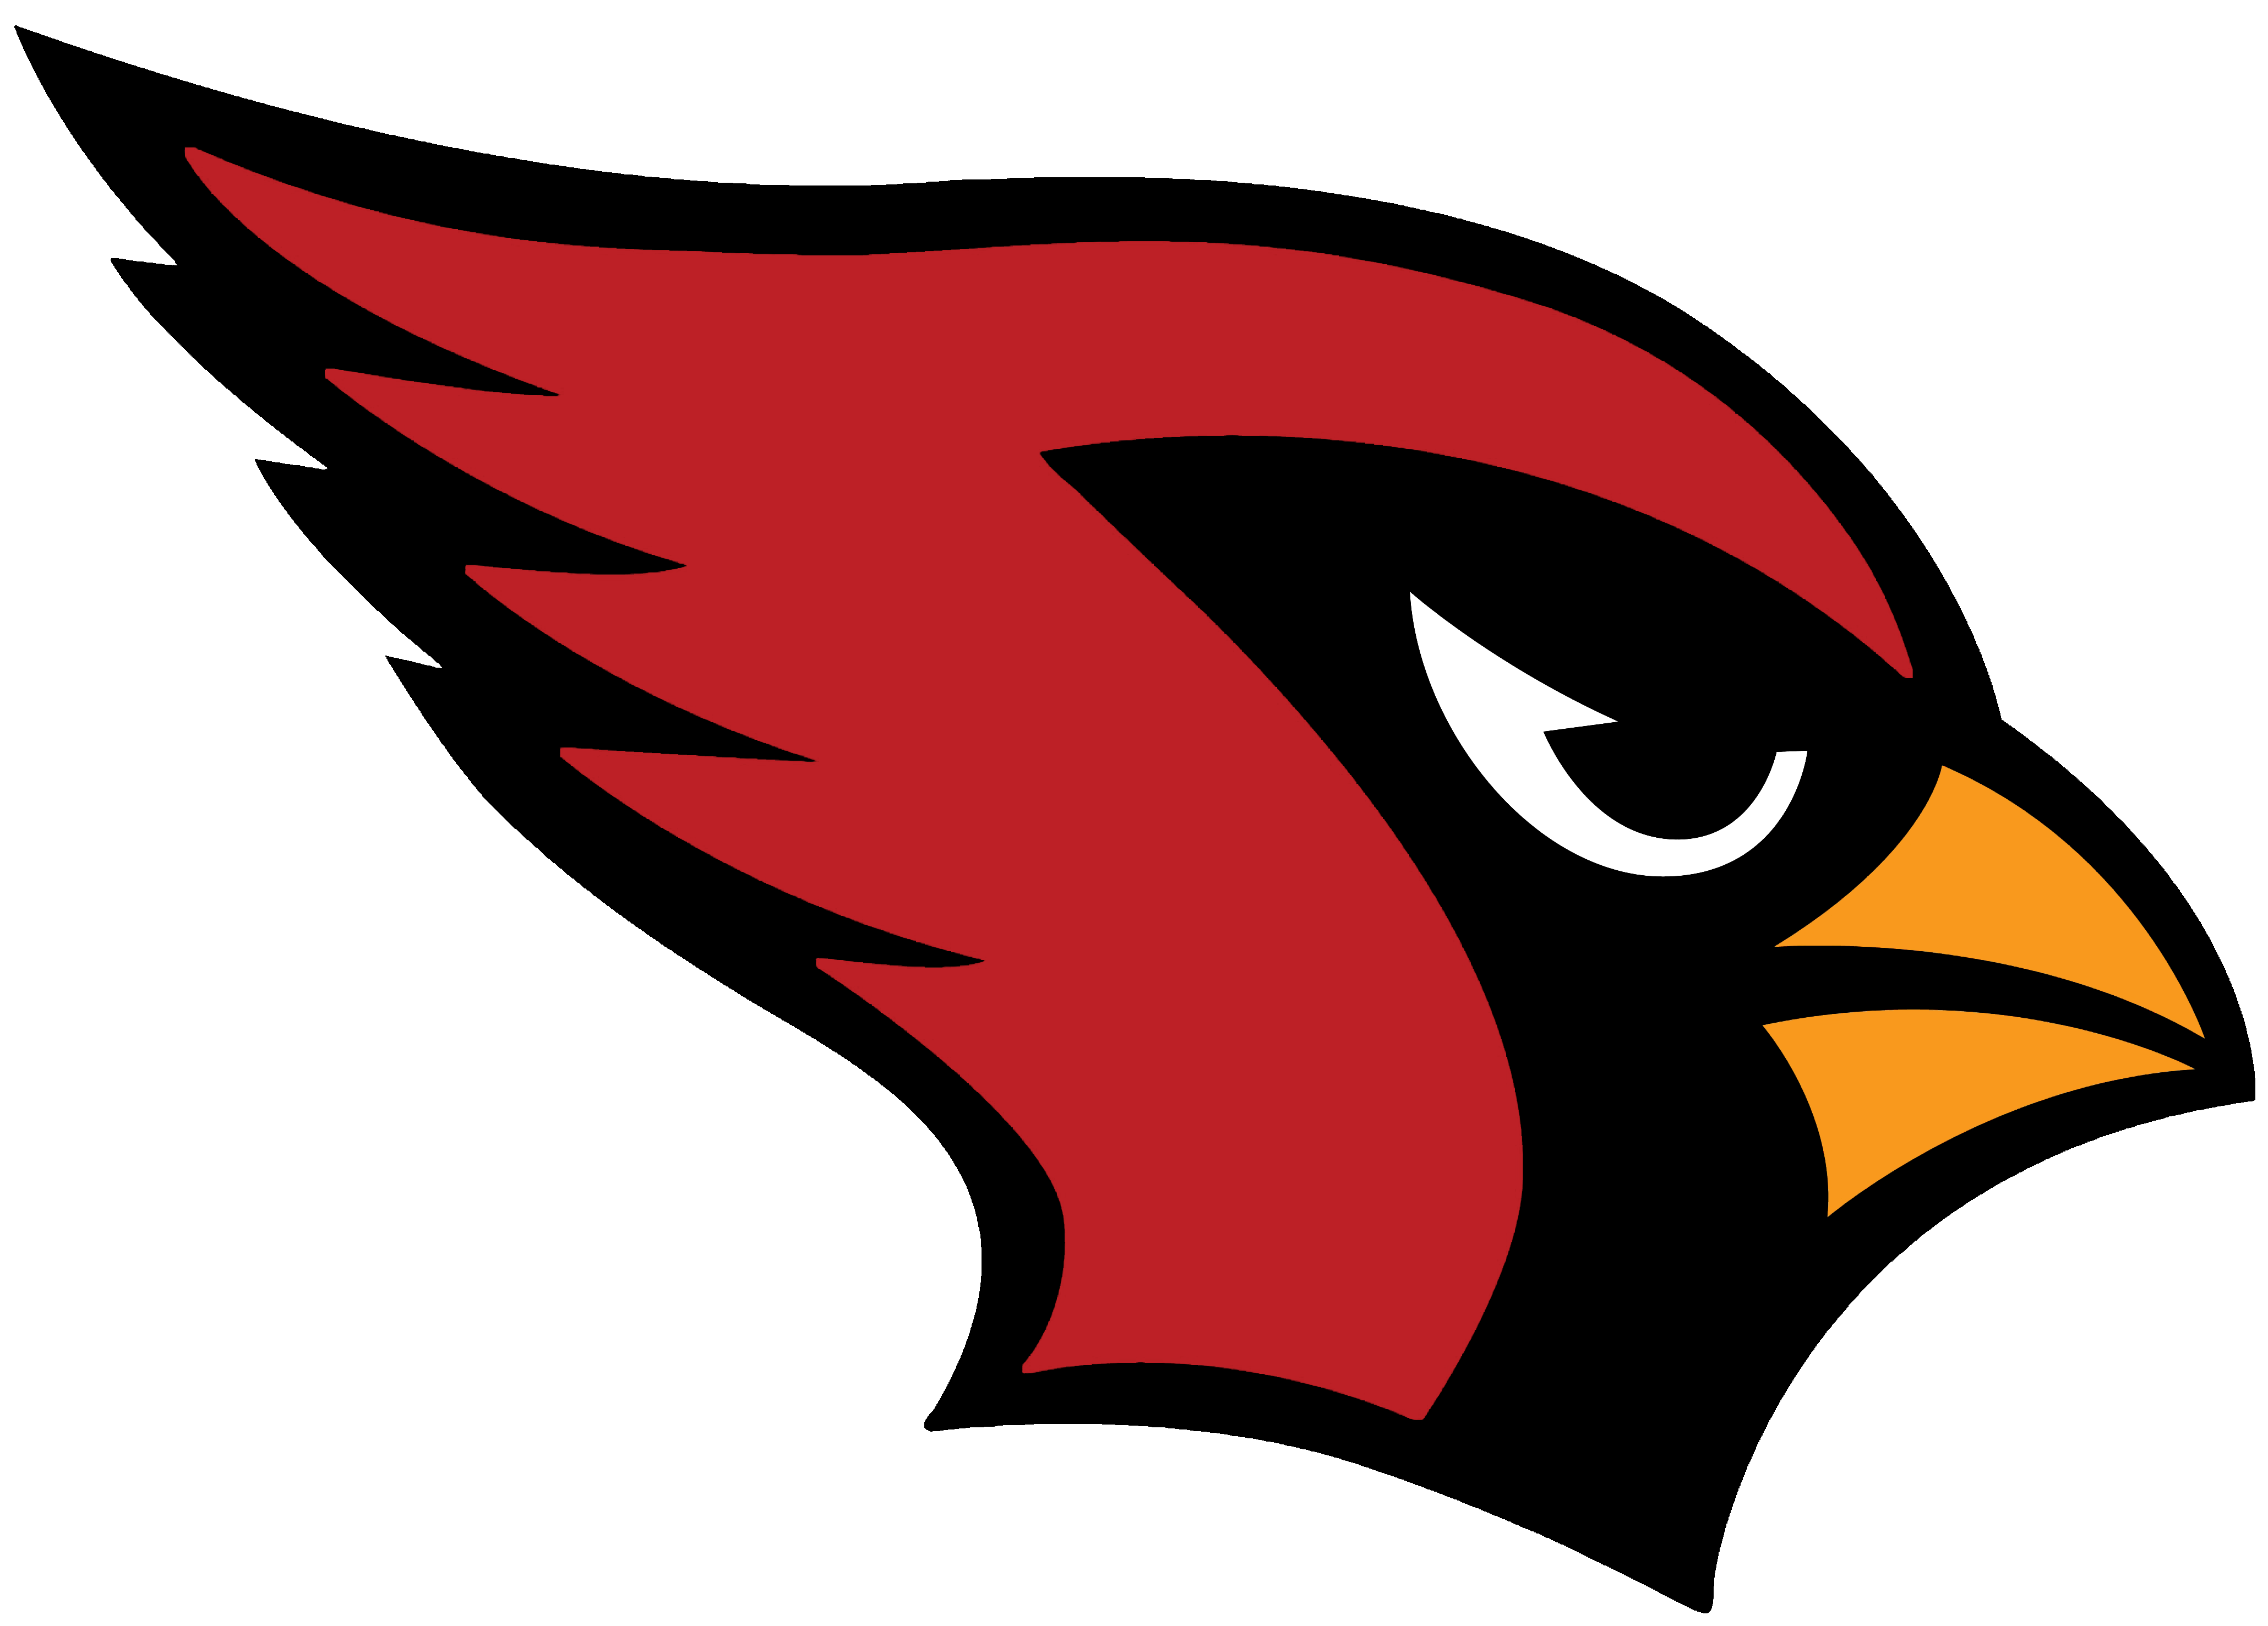 Cardinal basketball clipart image royalty free library Columbus Weekly Sports Update 9/25/17-10/1/17 - Small Town Preps image royalty free library